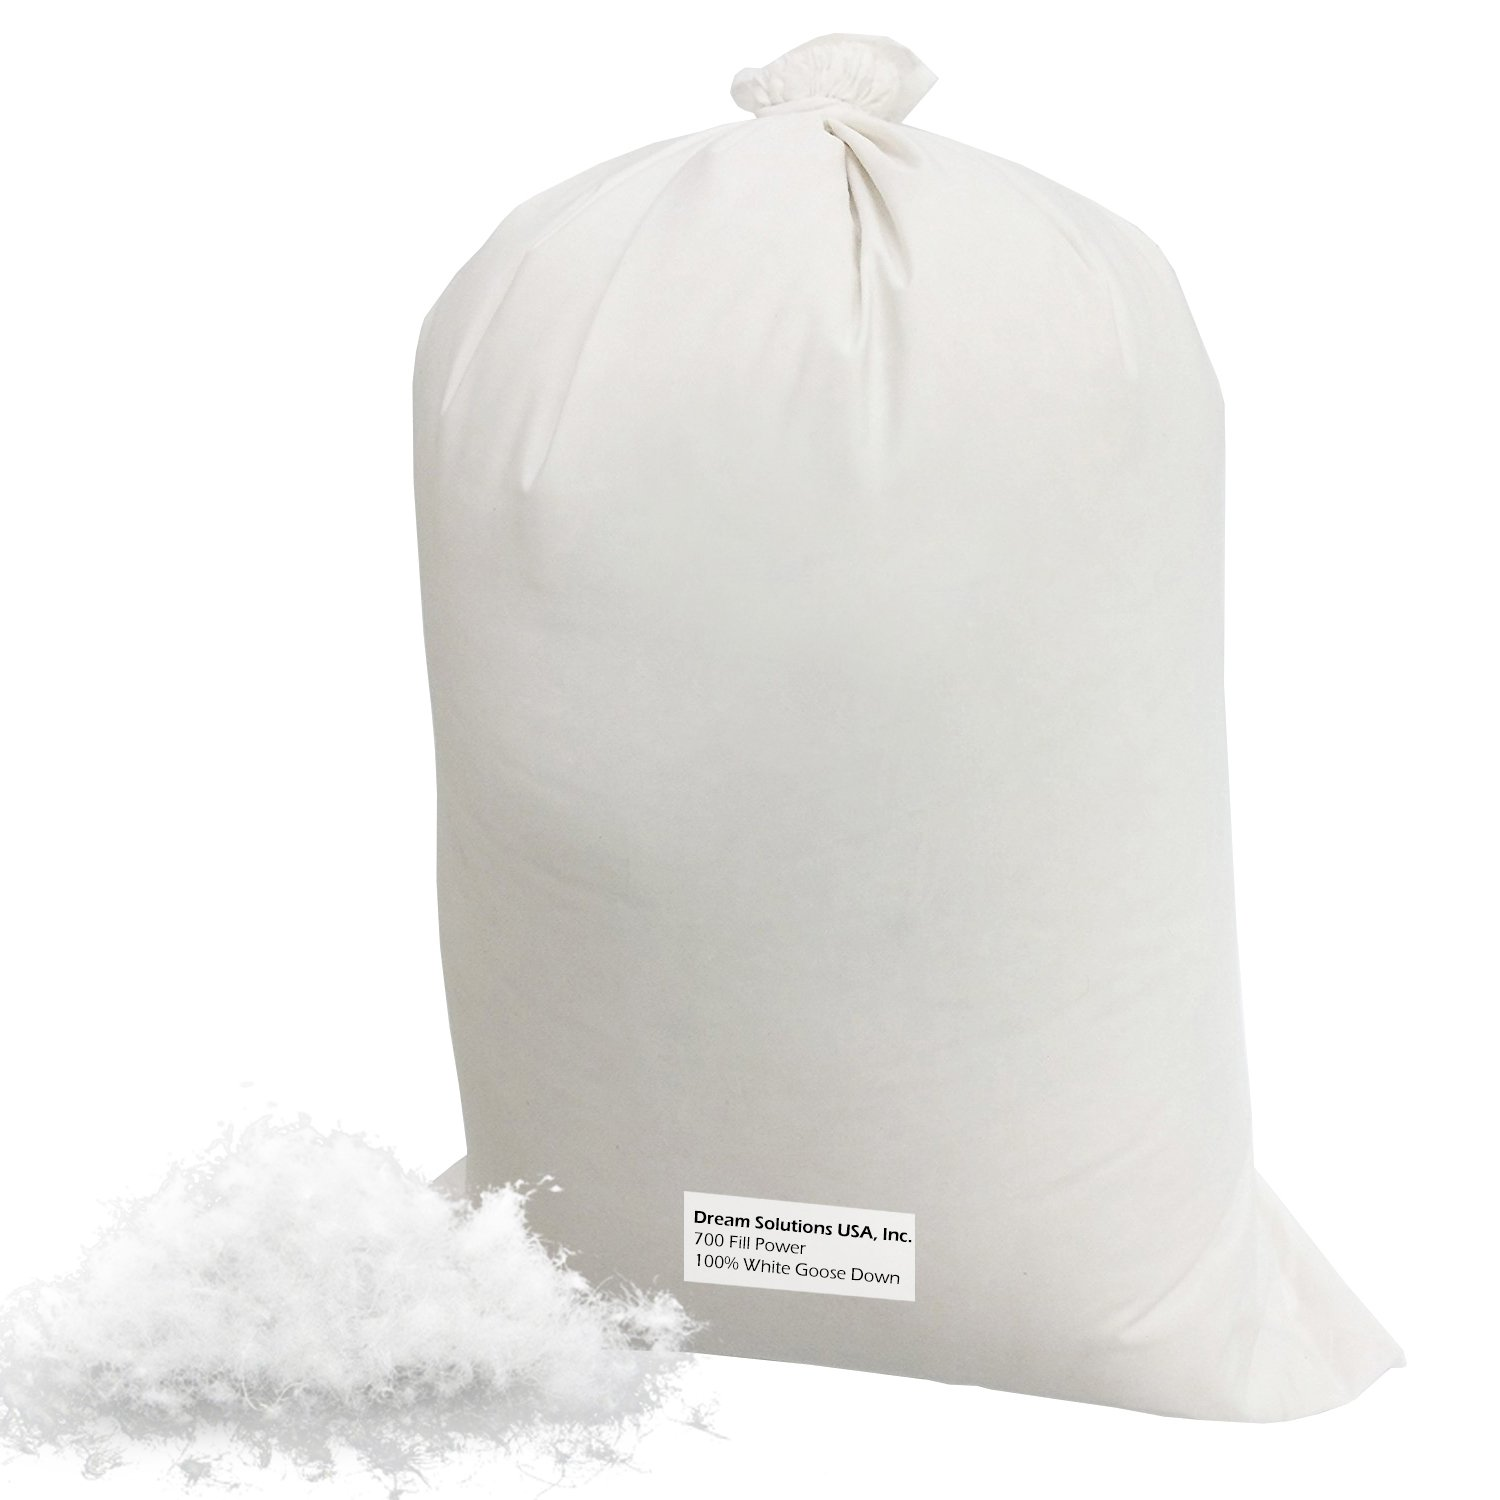 Bulk Goose Down Filling (1 lb.) 700 Fill Power – 100% Natural White, No Feathers – Fill Comforters, Pillows, Jackets and More – Ultra-Plush Hungarian Softness - Dream Solutions USA Brand GWD-1/2LB